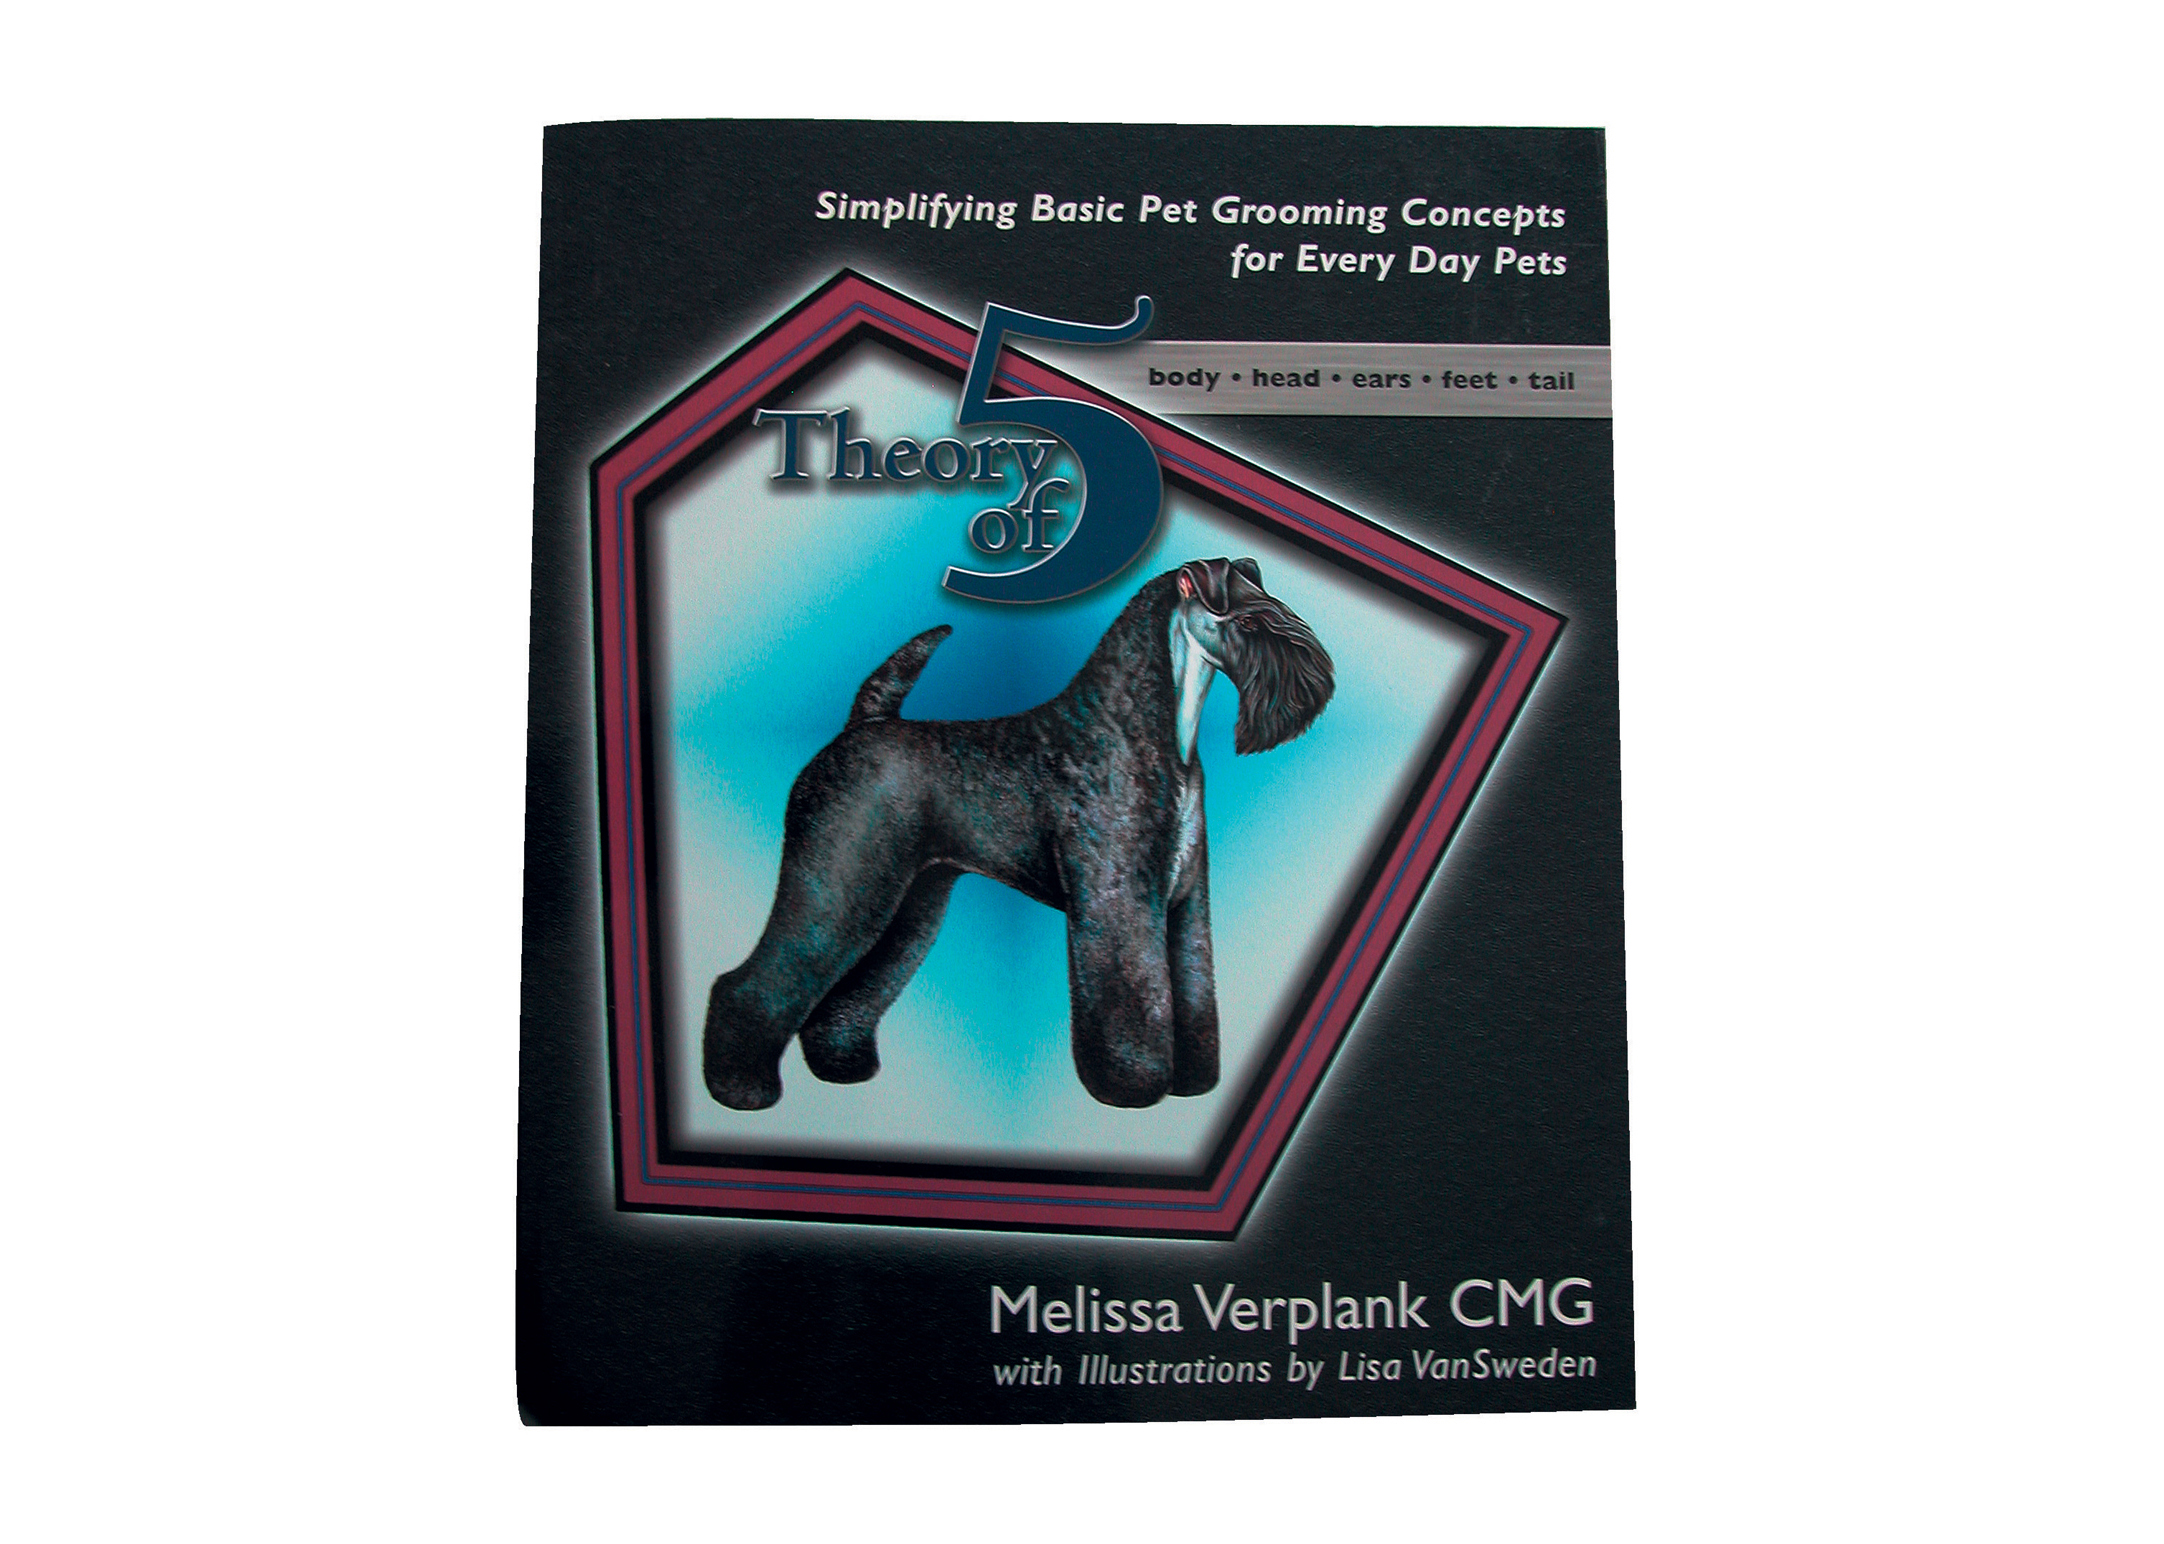 Melissa Verplank Theory of 5 Pet Grooming Manual Livre